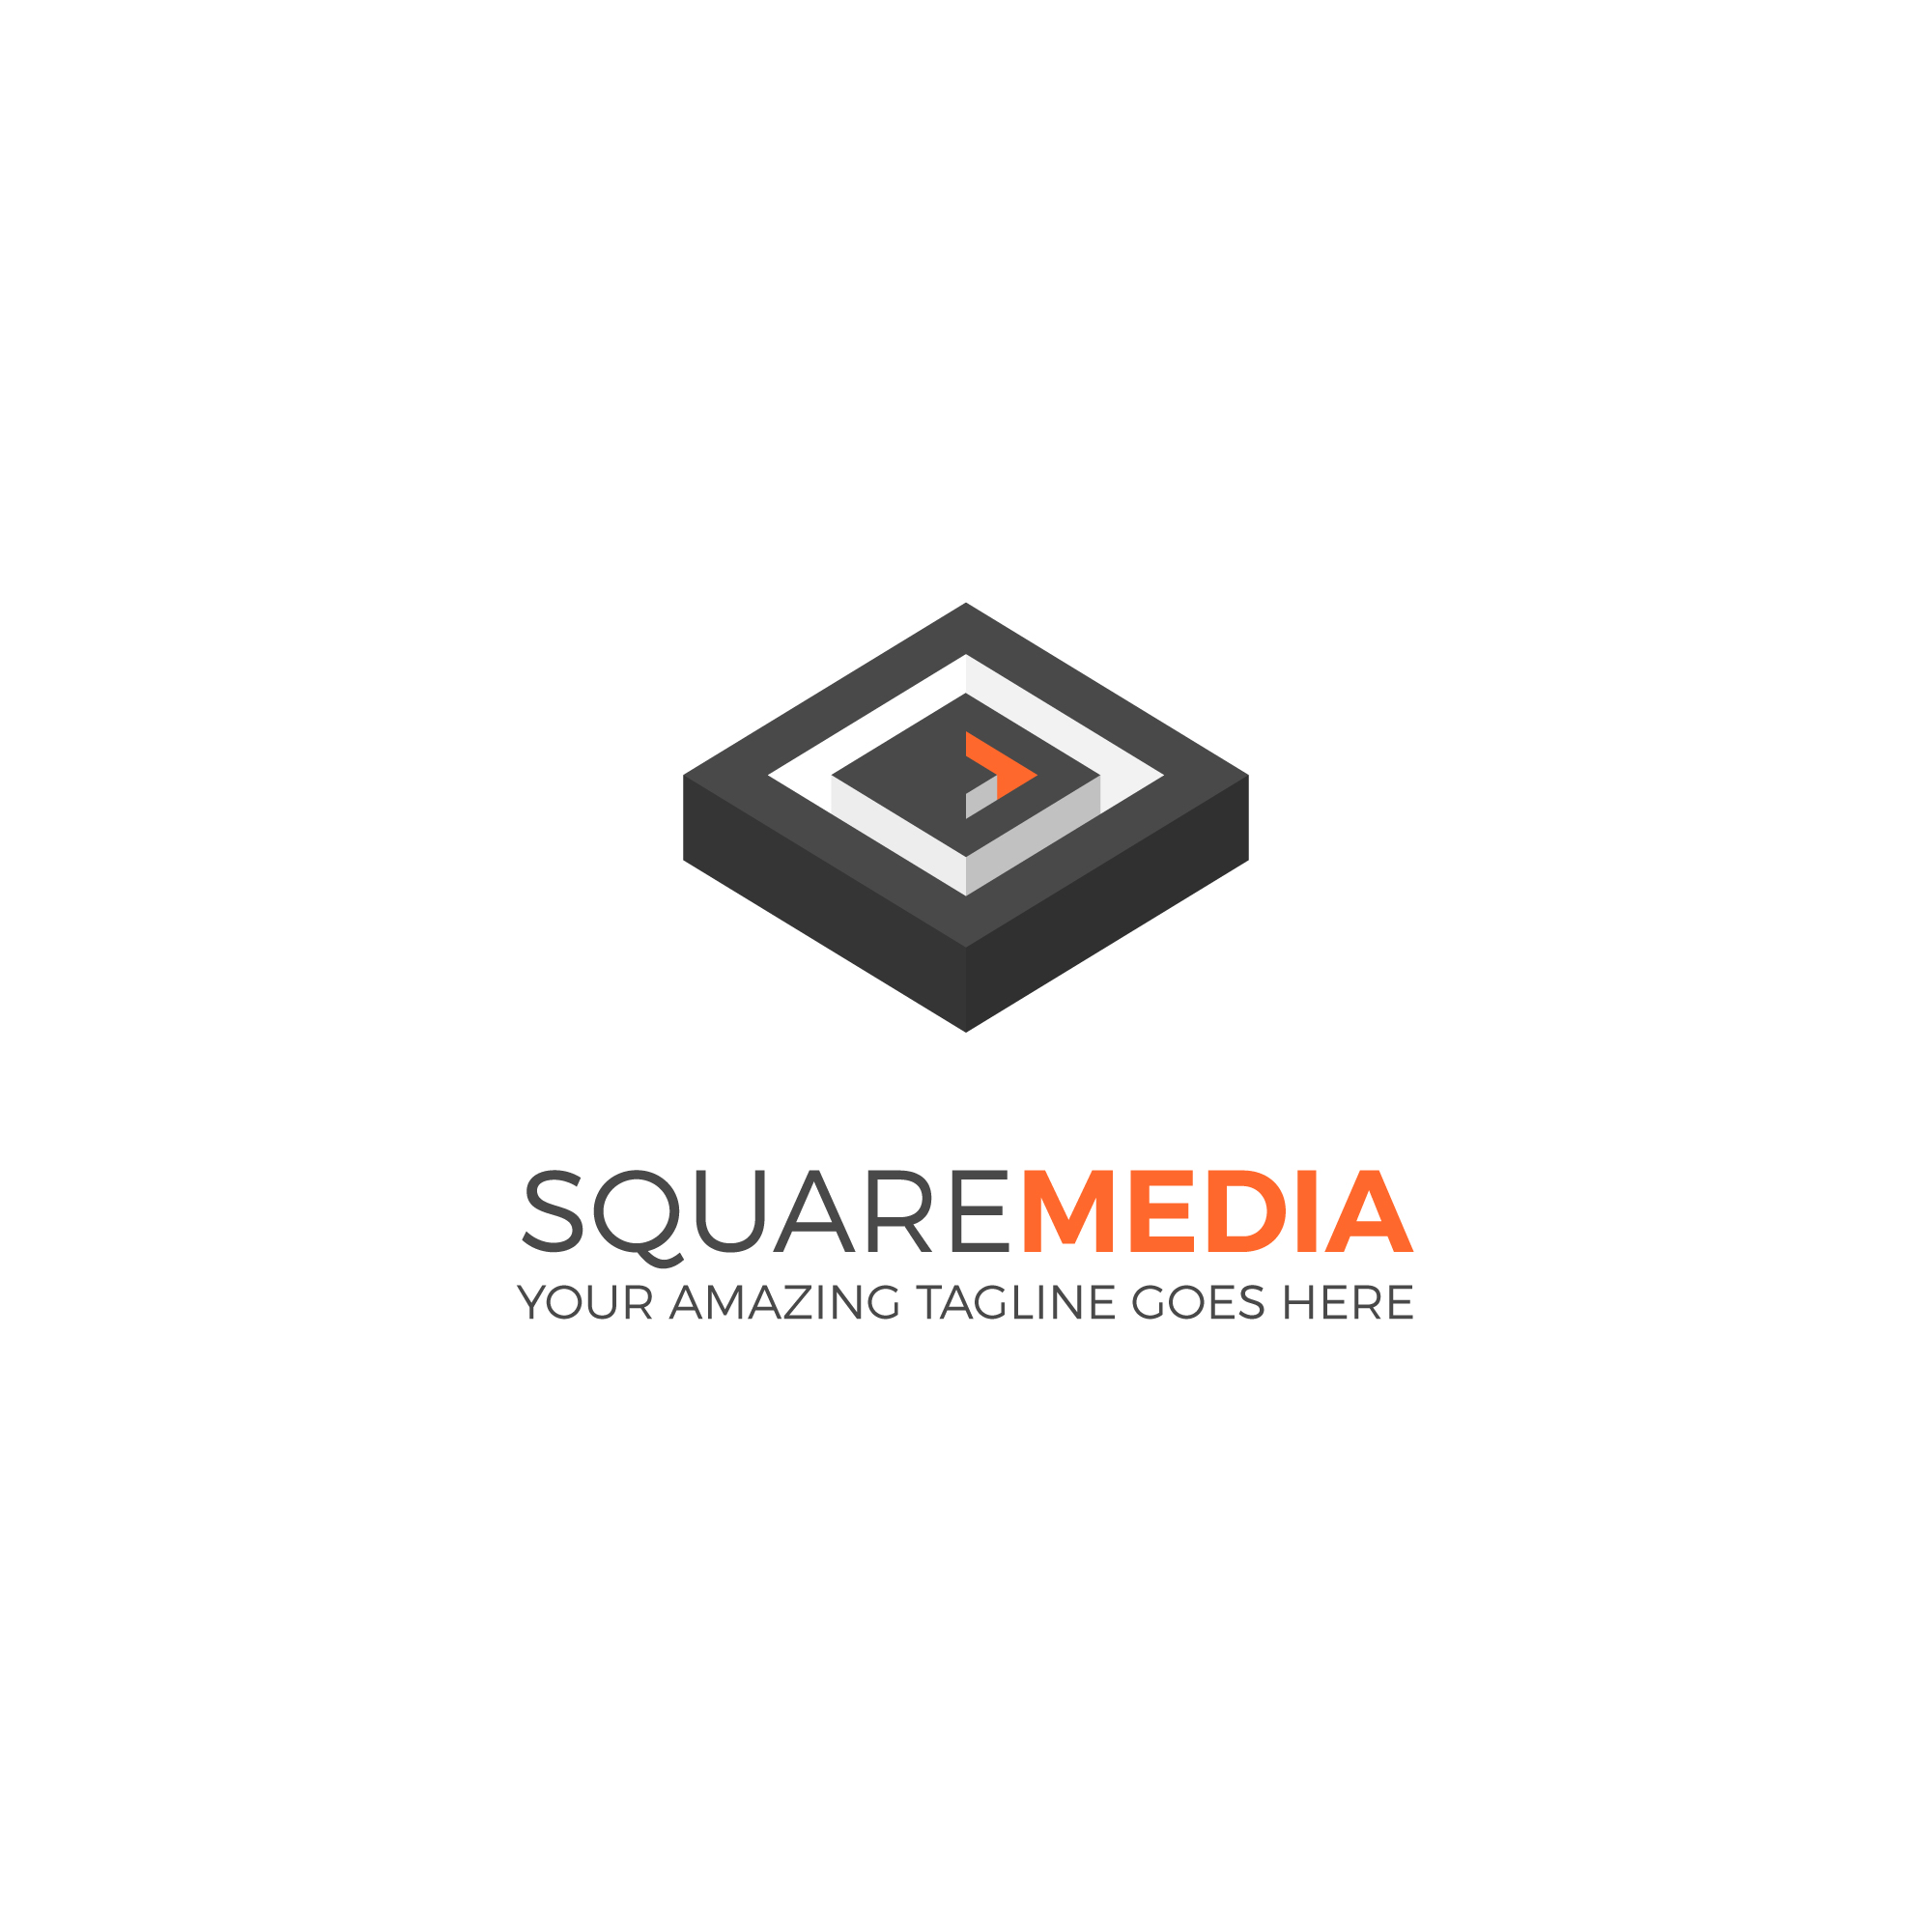 Square media logo template